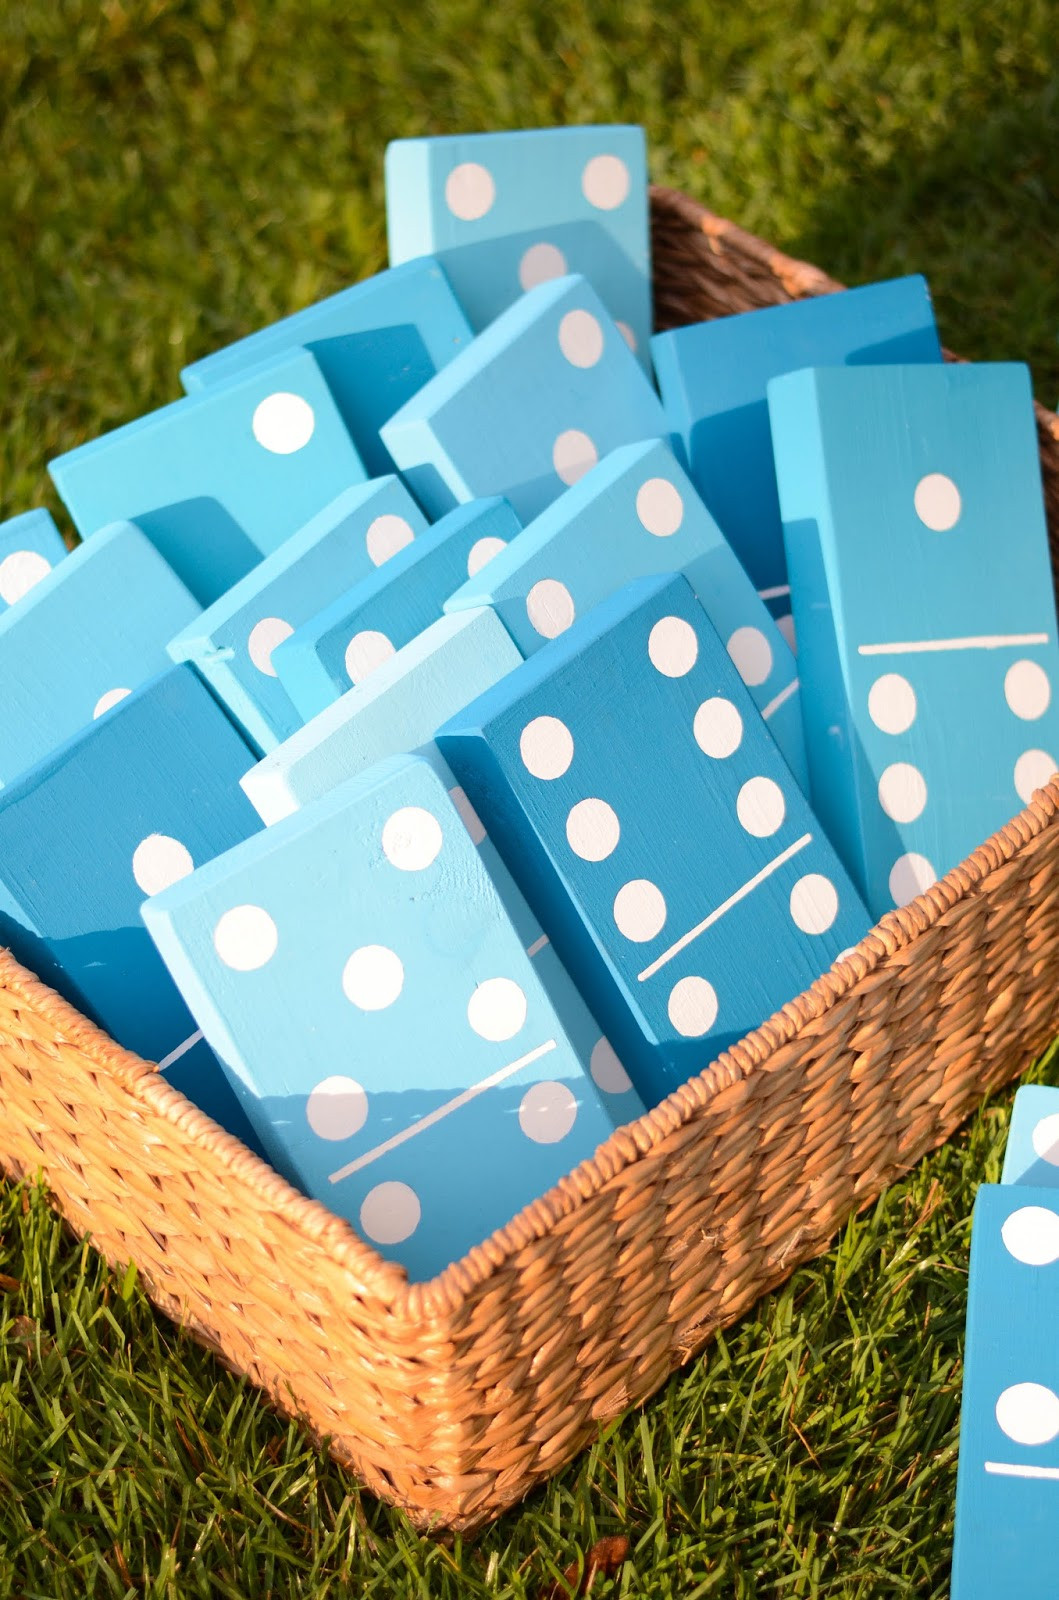 Best ideas about Backyard Games DIY . Save or Pin 25 DIY Yard Games Now.